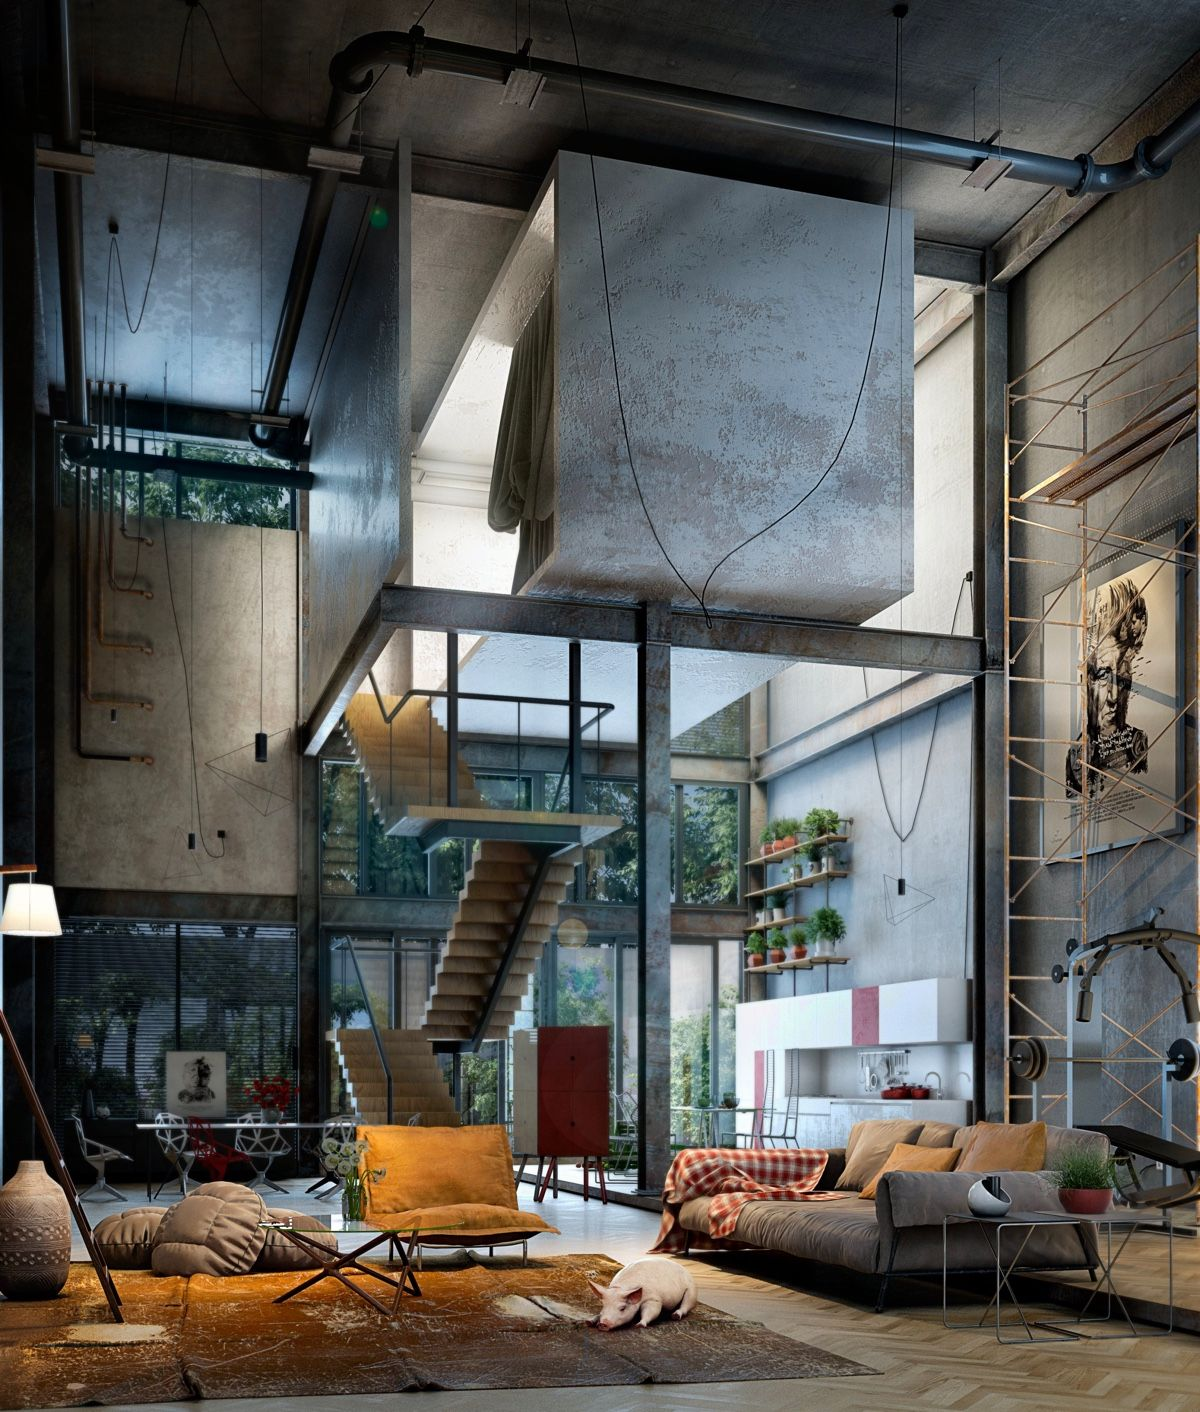 Car Garage Loft Retro Style: 40 Loft Living Spaces That Will Blow Your Mind